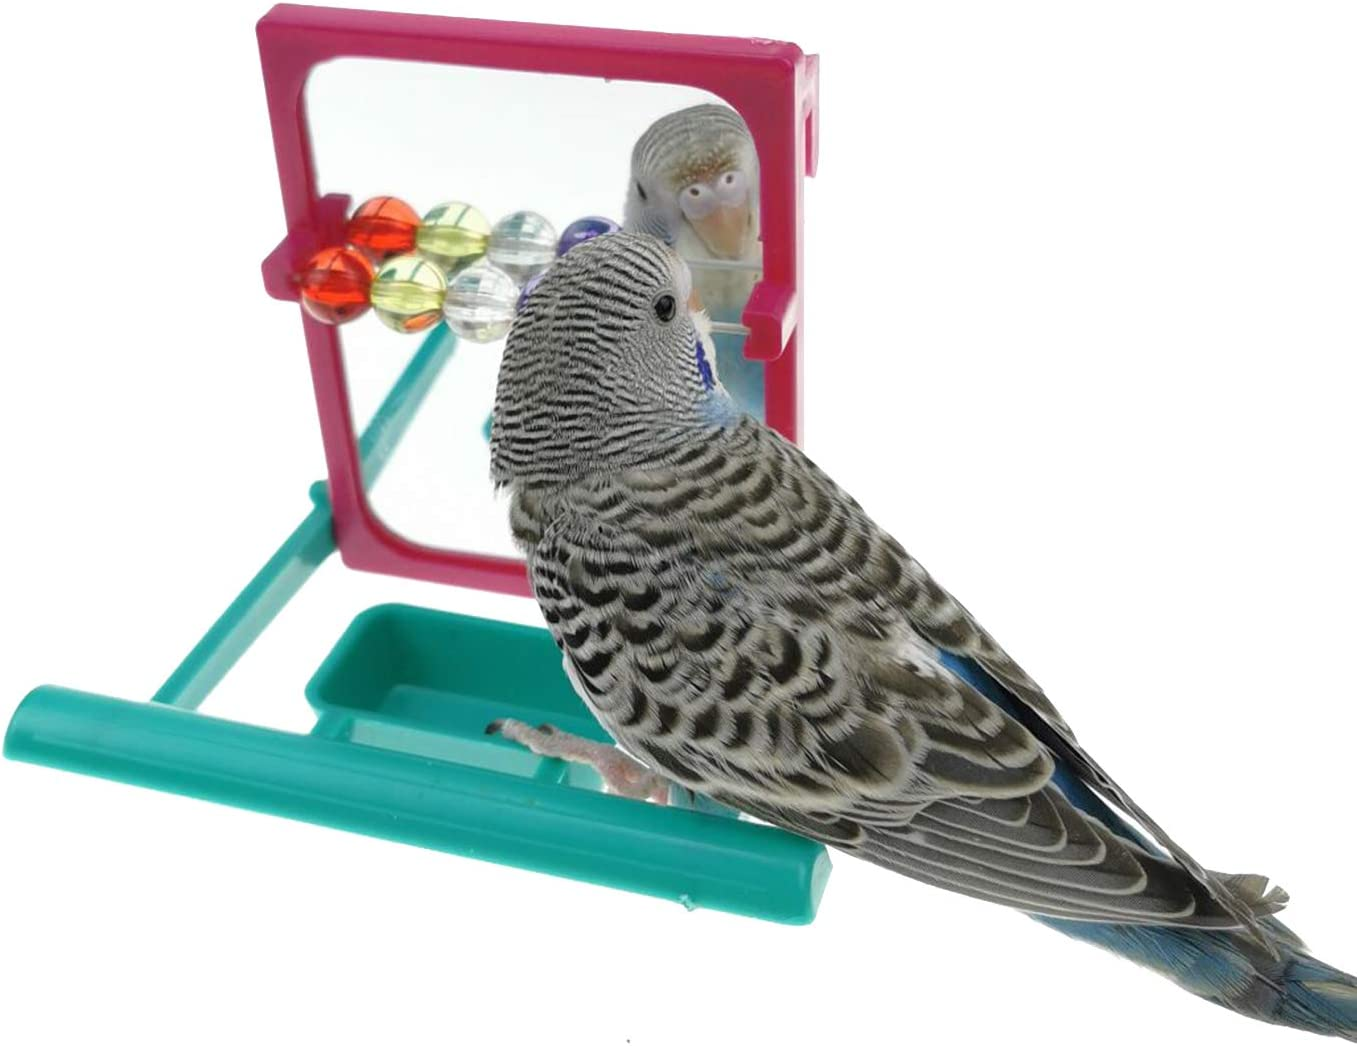 MuYaoPet Bird Parrot Mirror Beads Toy fo with Feeder Stand 100% quality warranty Same day shipping Perch